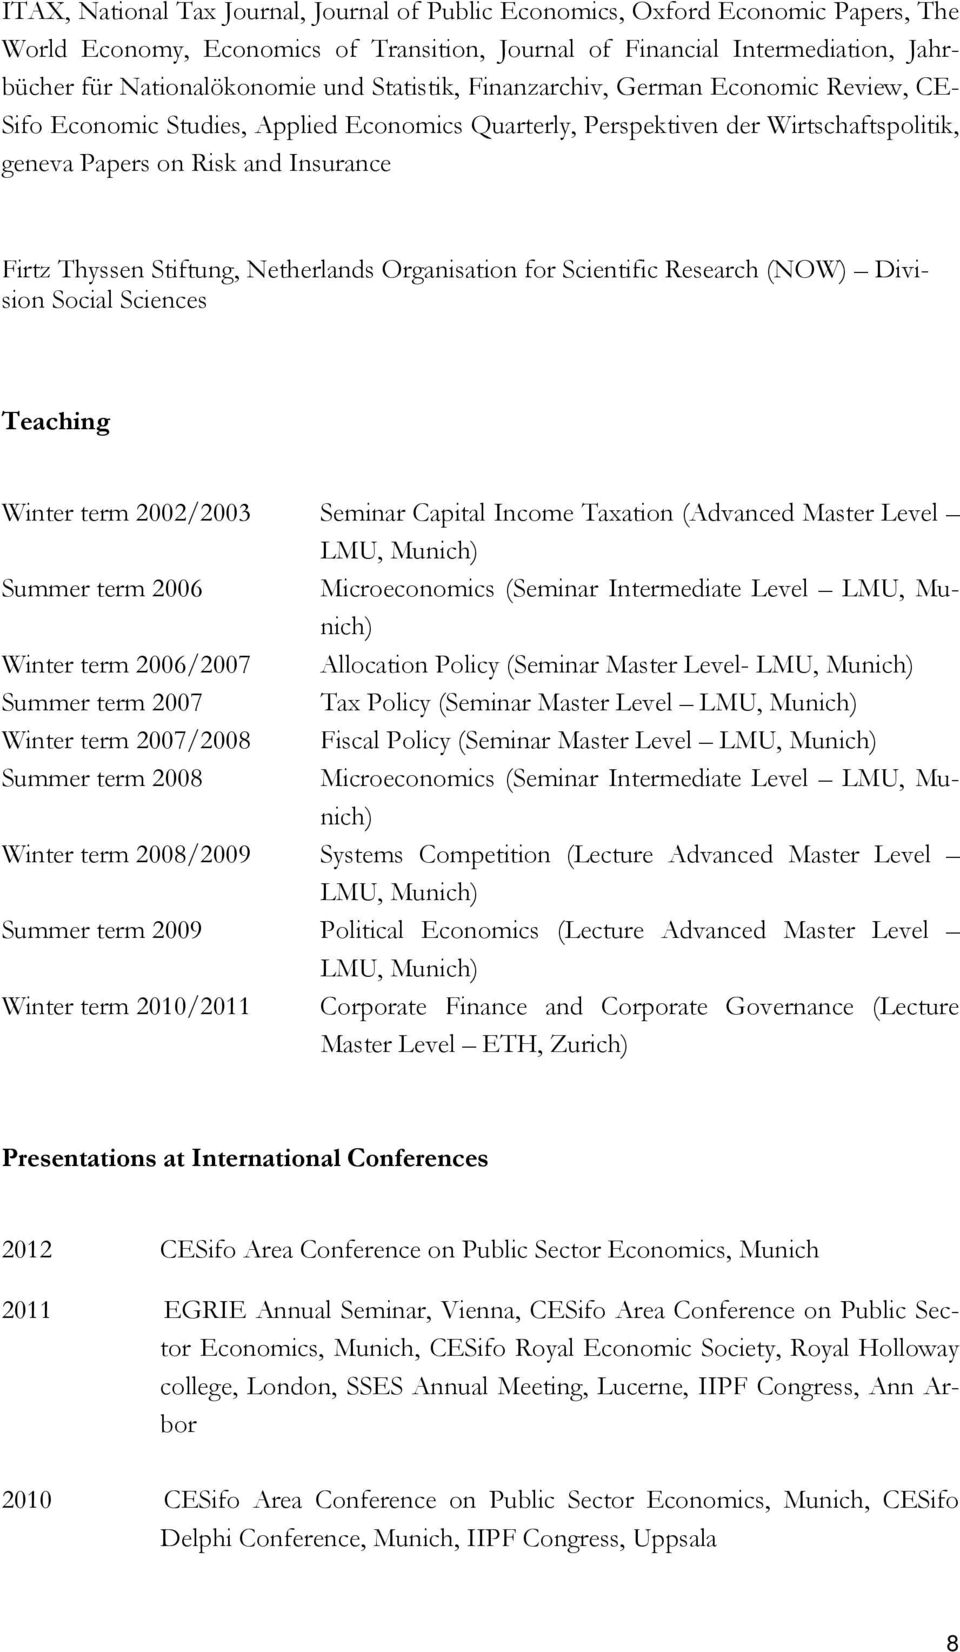 Stiftung, Netherlands Organisation for Scientific Research (NOW) Division Social Sciences Teaching Winter term 2002/2003 Seminar Capital Income Taxation (Advanced Master Level LMU, Munich) Summer